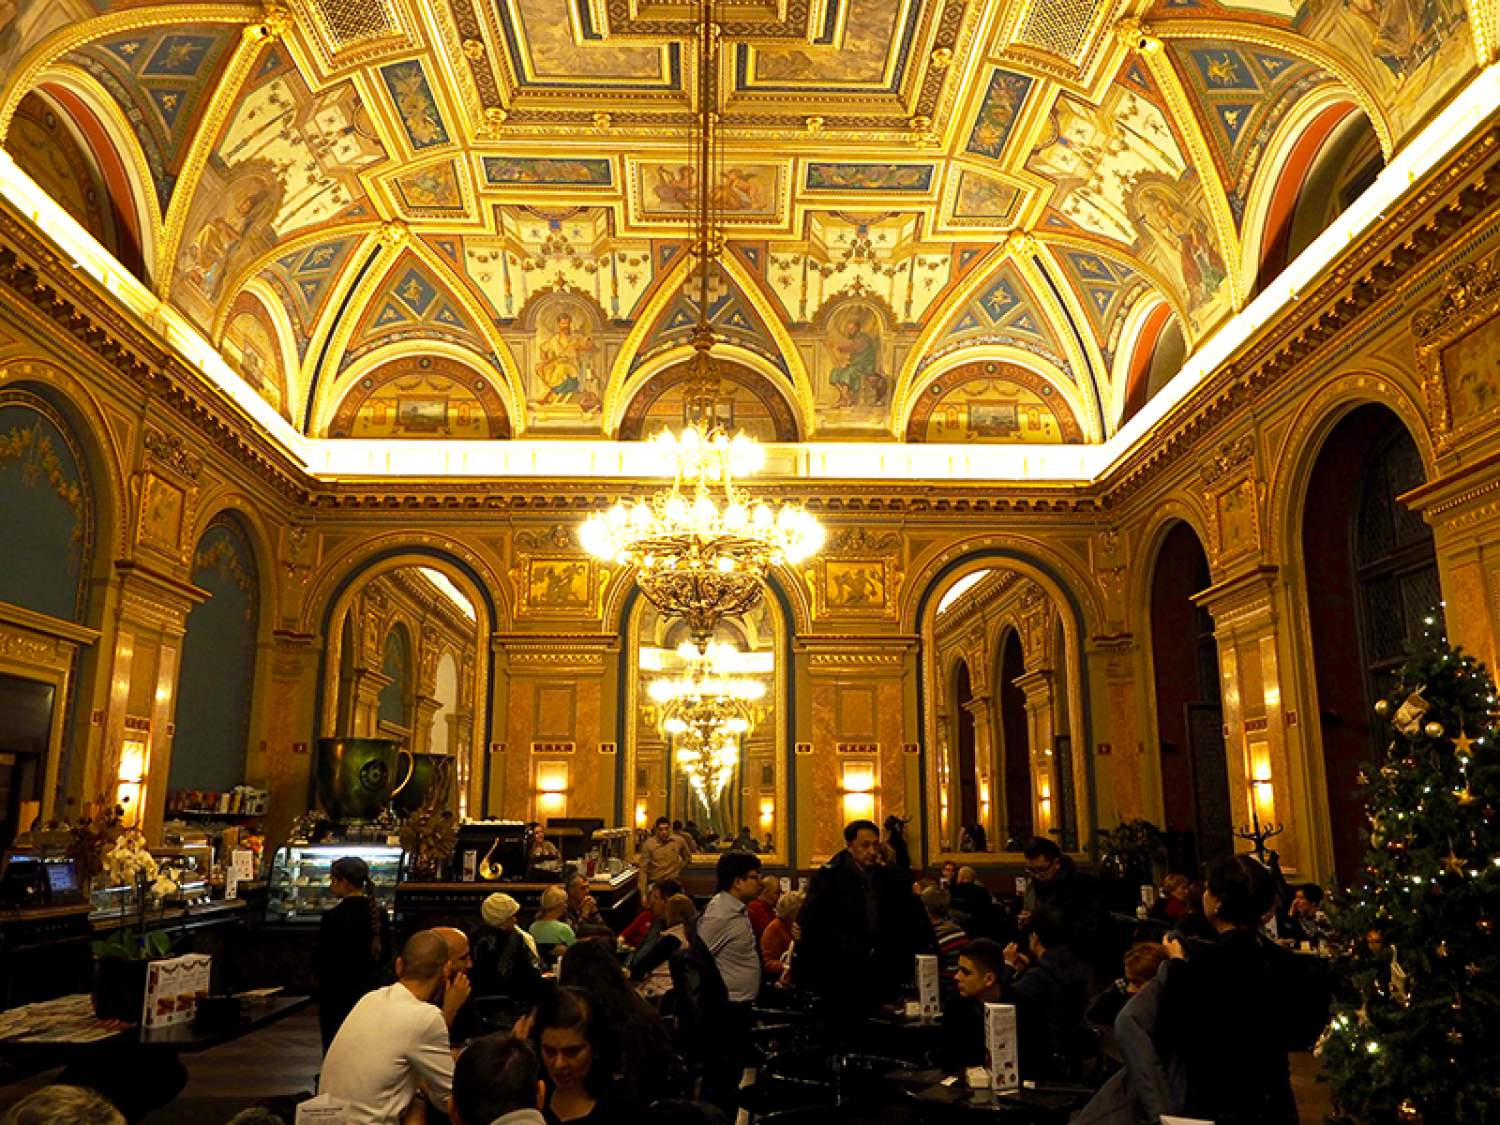 Alexandra Book Cafe in Budapest, Hungary